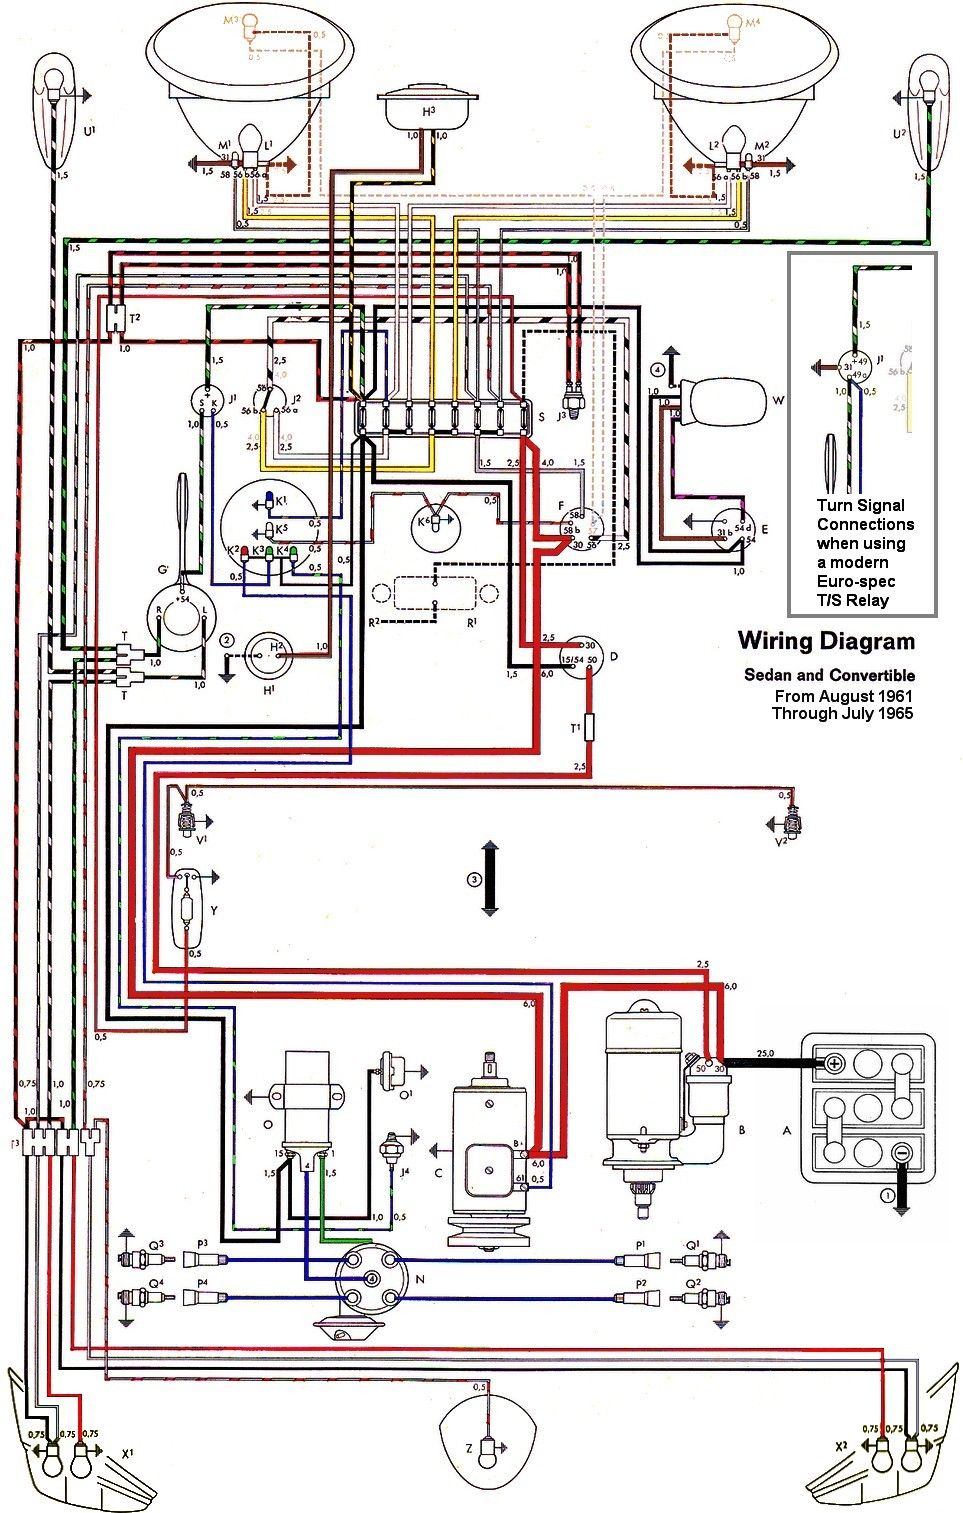 2235472c26e9b61112a110100d6ddea3 wiring diagram in color 1964 vw bug, beetle, convertible the Basic Electrical Wiring Diagrams at reclaimingppi.co